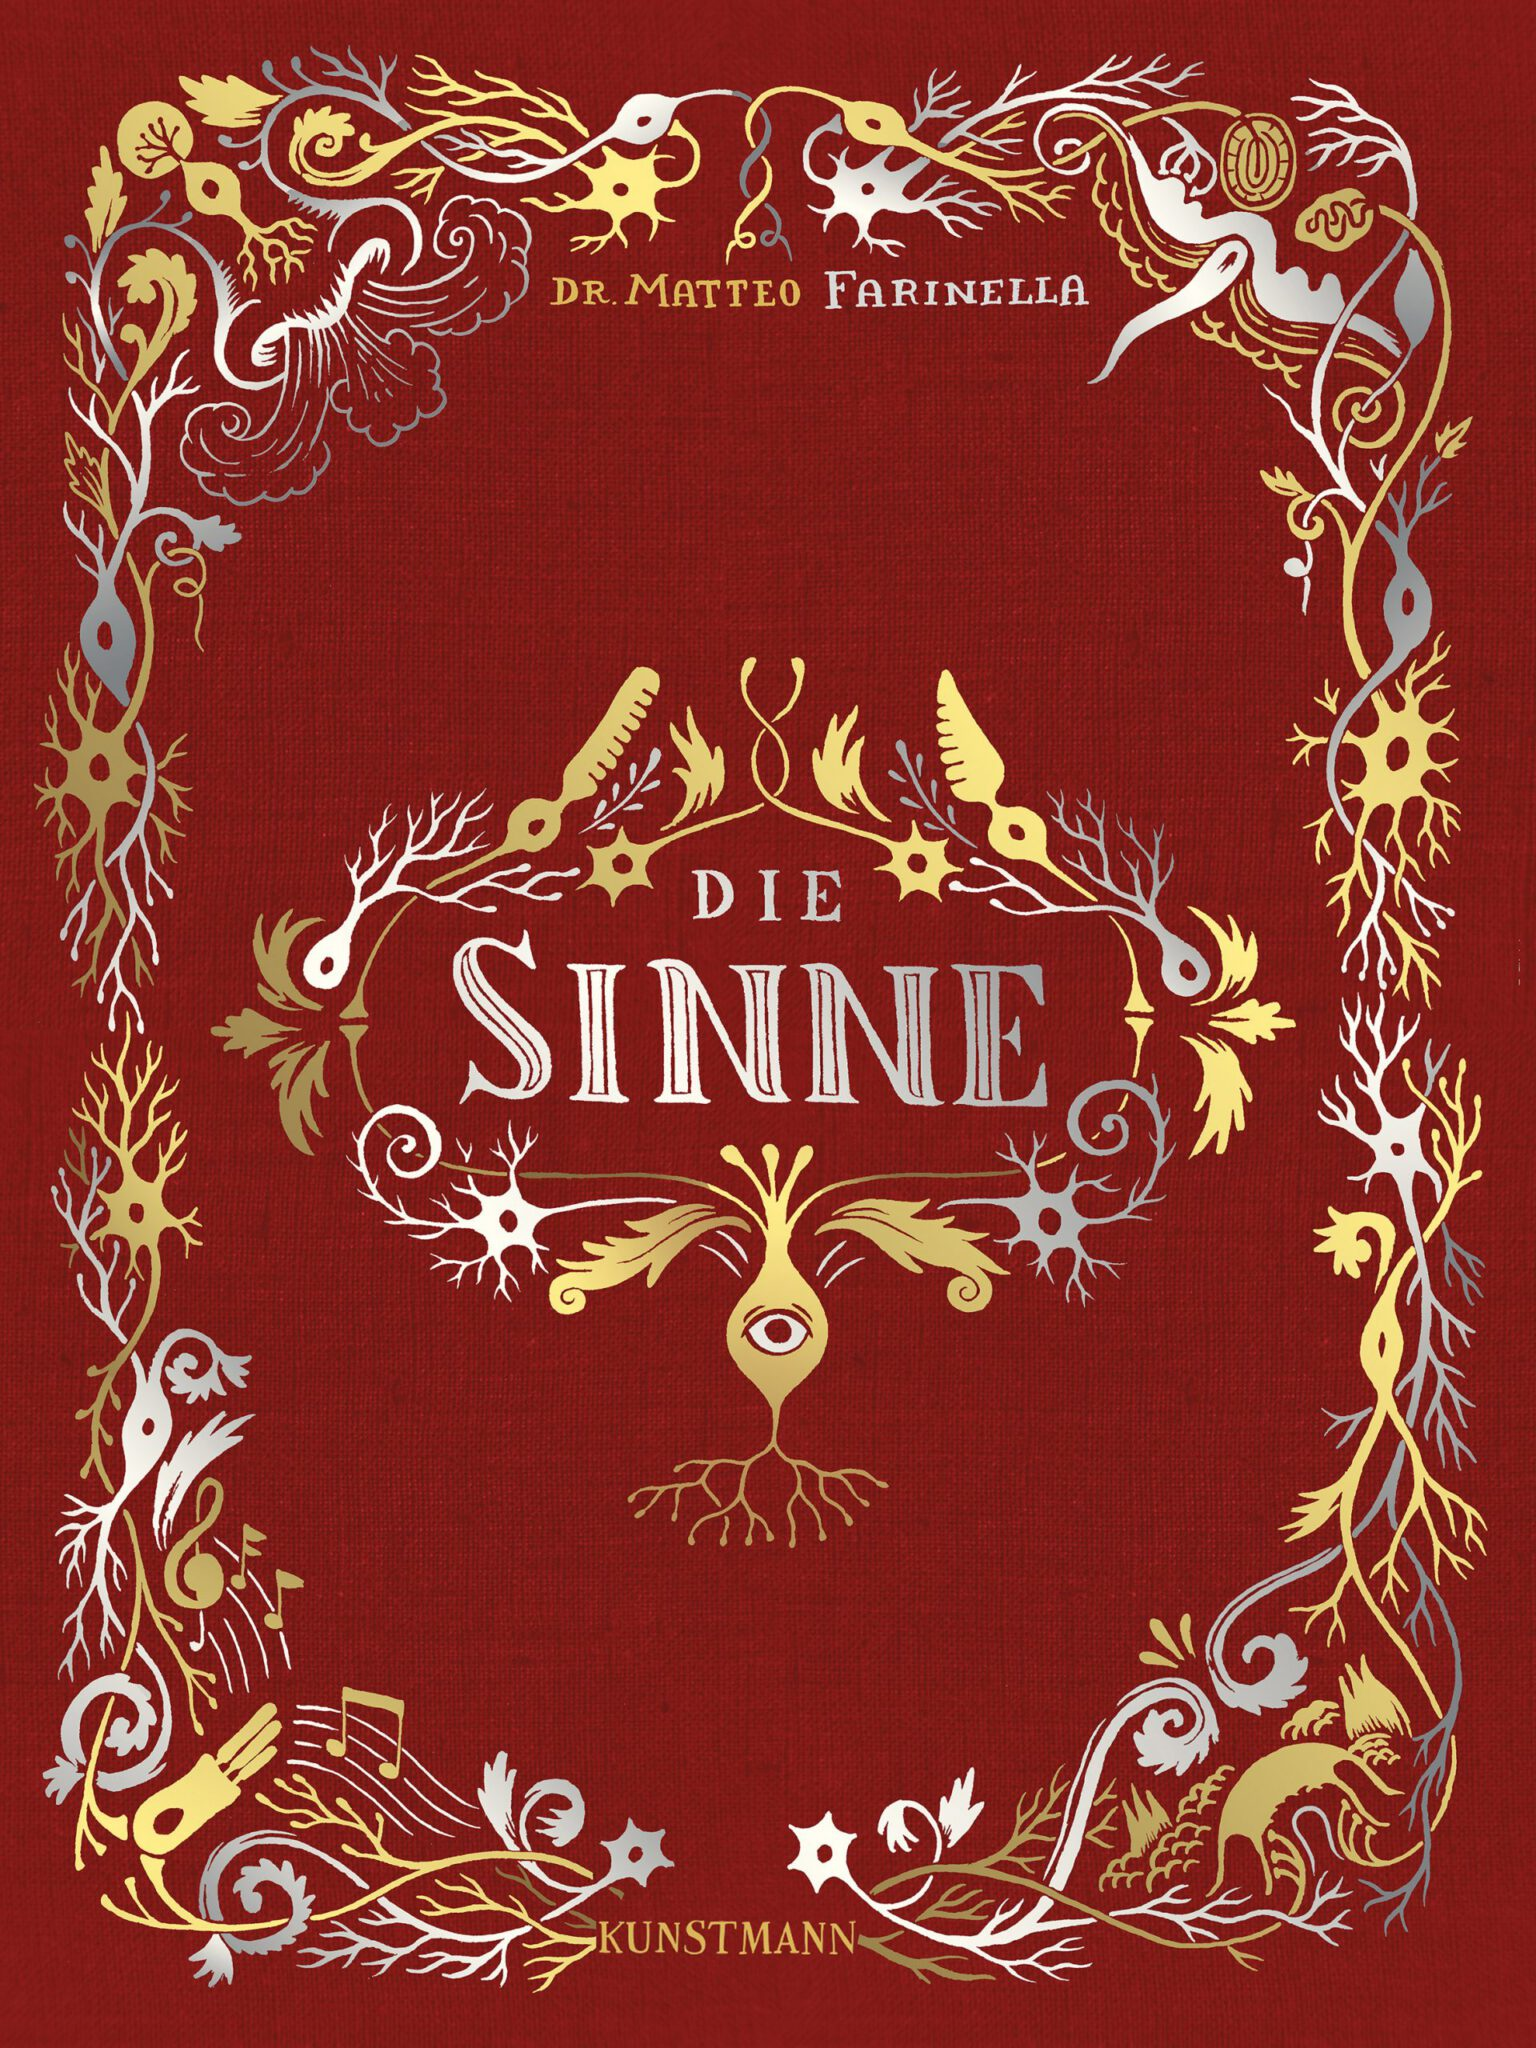 Die Sinne Cover